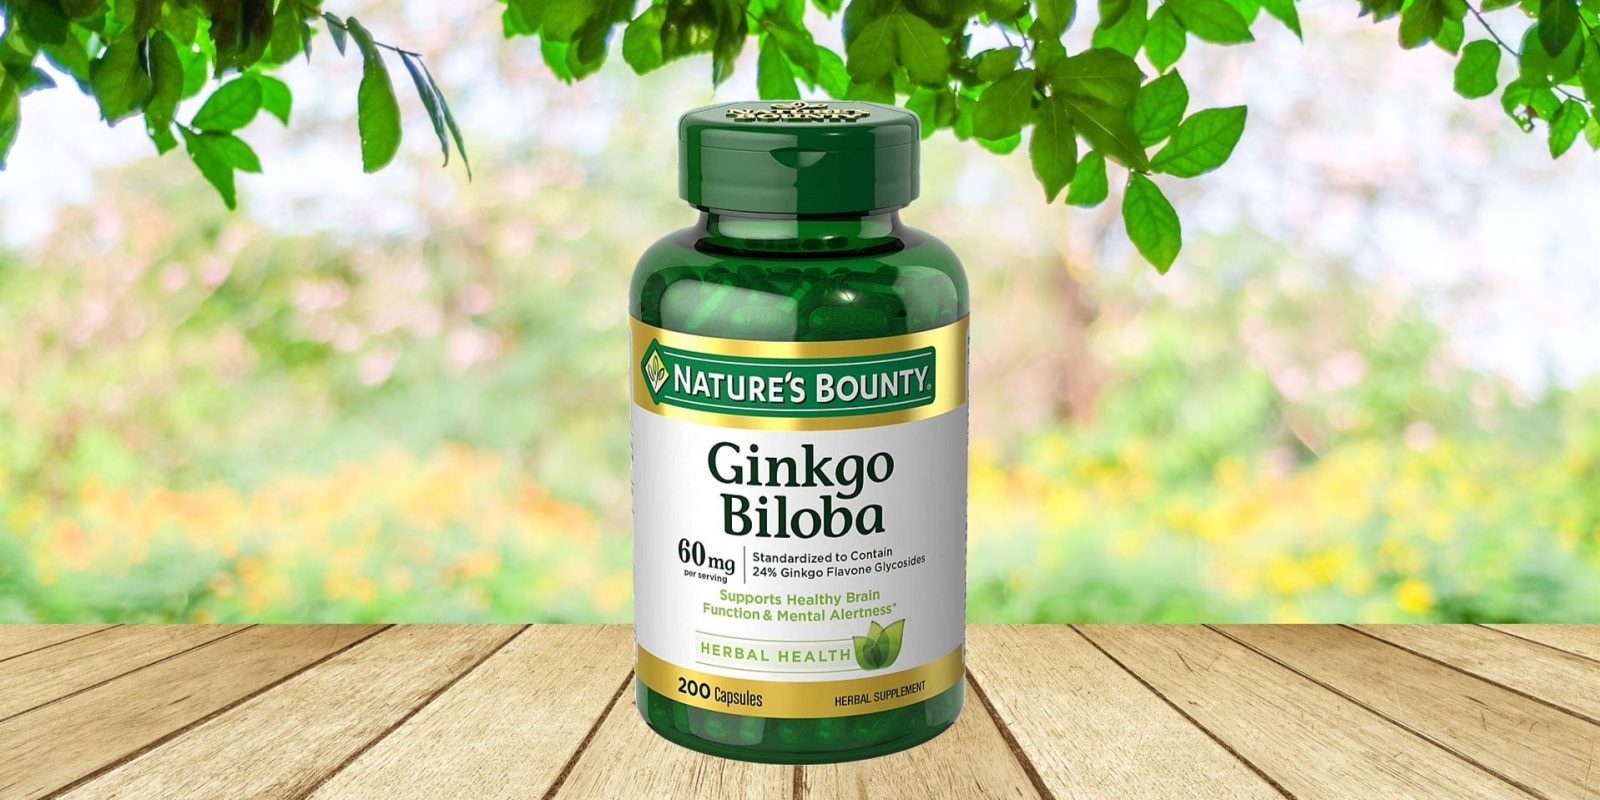 Nature's Bounty Ginkgo Biloba Plus Herbal Supplement